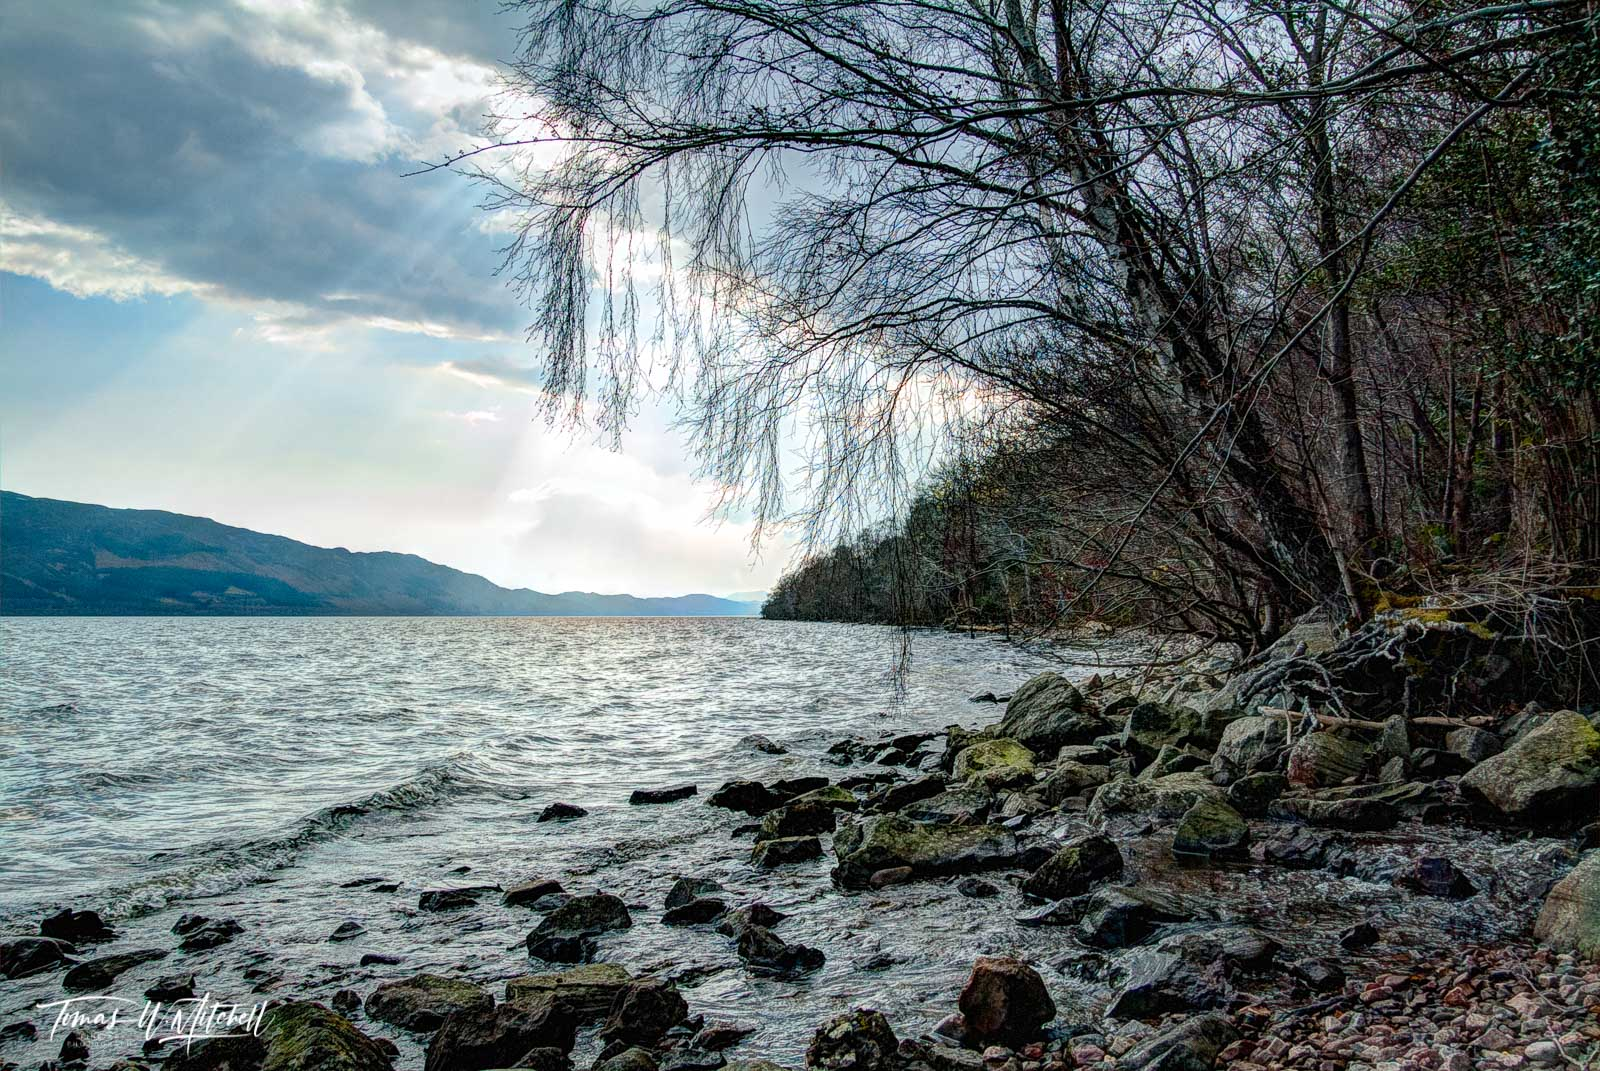 limited edition, fine art, prints, loch ness, scotland, photograph, water, clouds, sun, rays, tones, grays, blues, green, rocks, wave, tree, photo